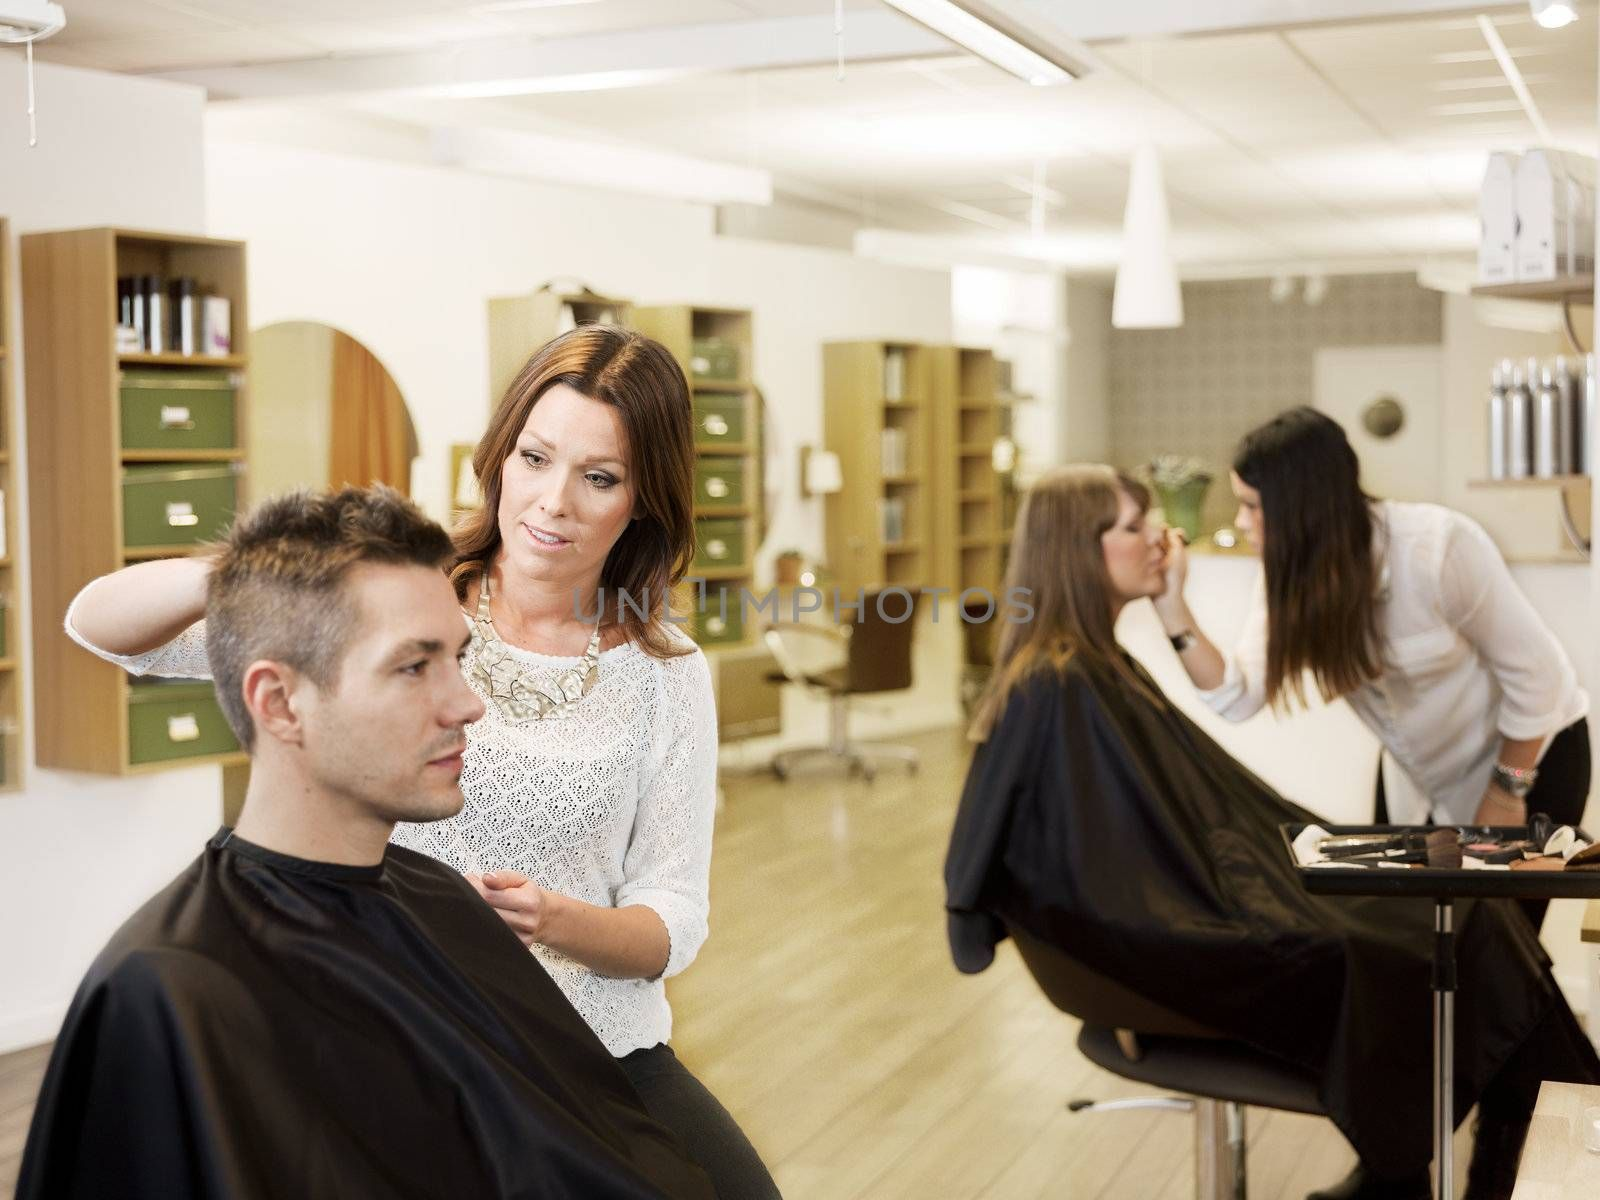 Customers and Hairdressers in the Beauty shop